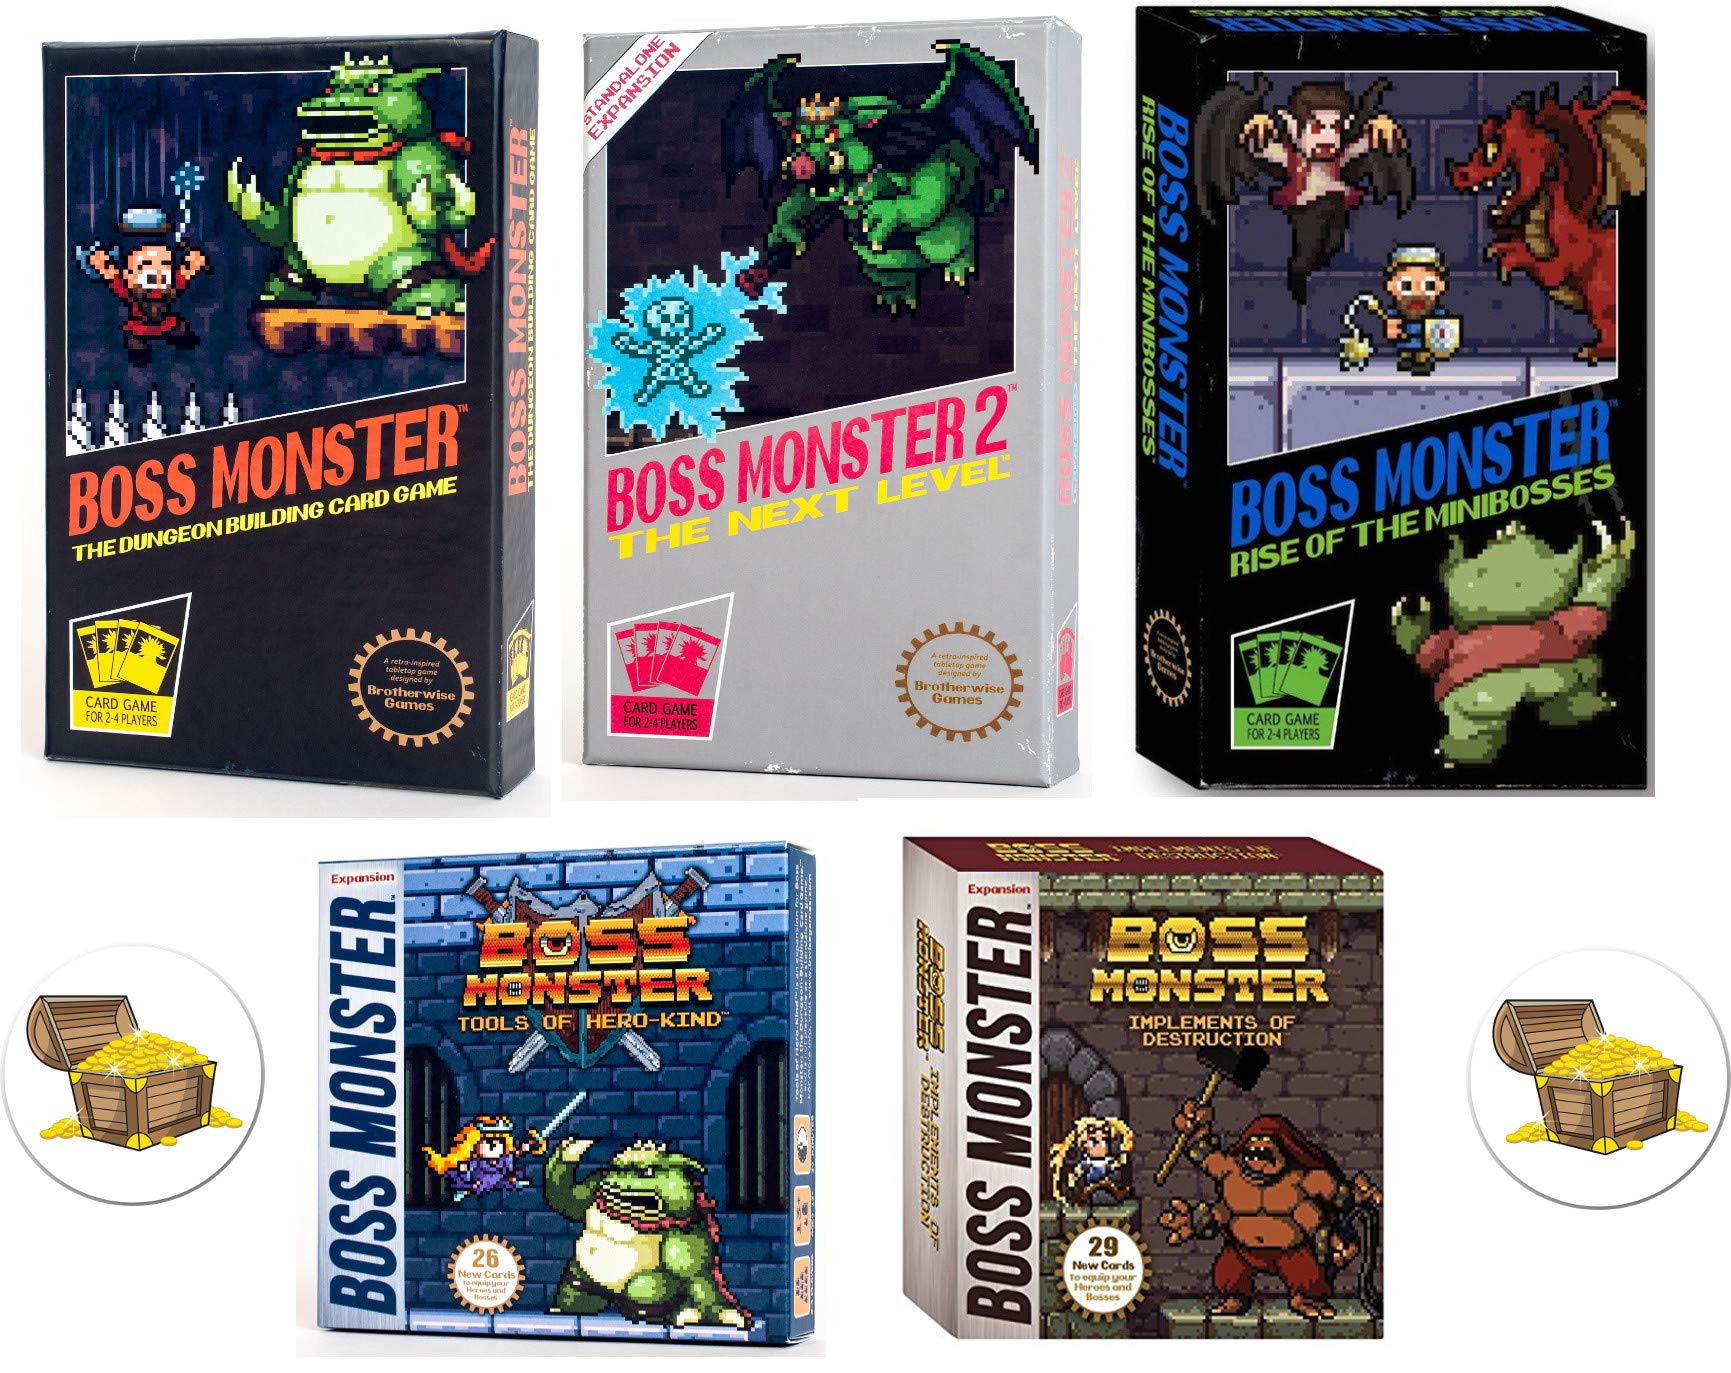 Boss Monster Card Game Bundle with Boss Monster 1, 2, and 3, Implements of Destruction and Tools of Hero Kind Plus 2 Treasure Chest Buttons